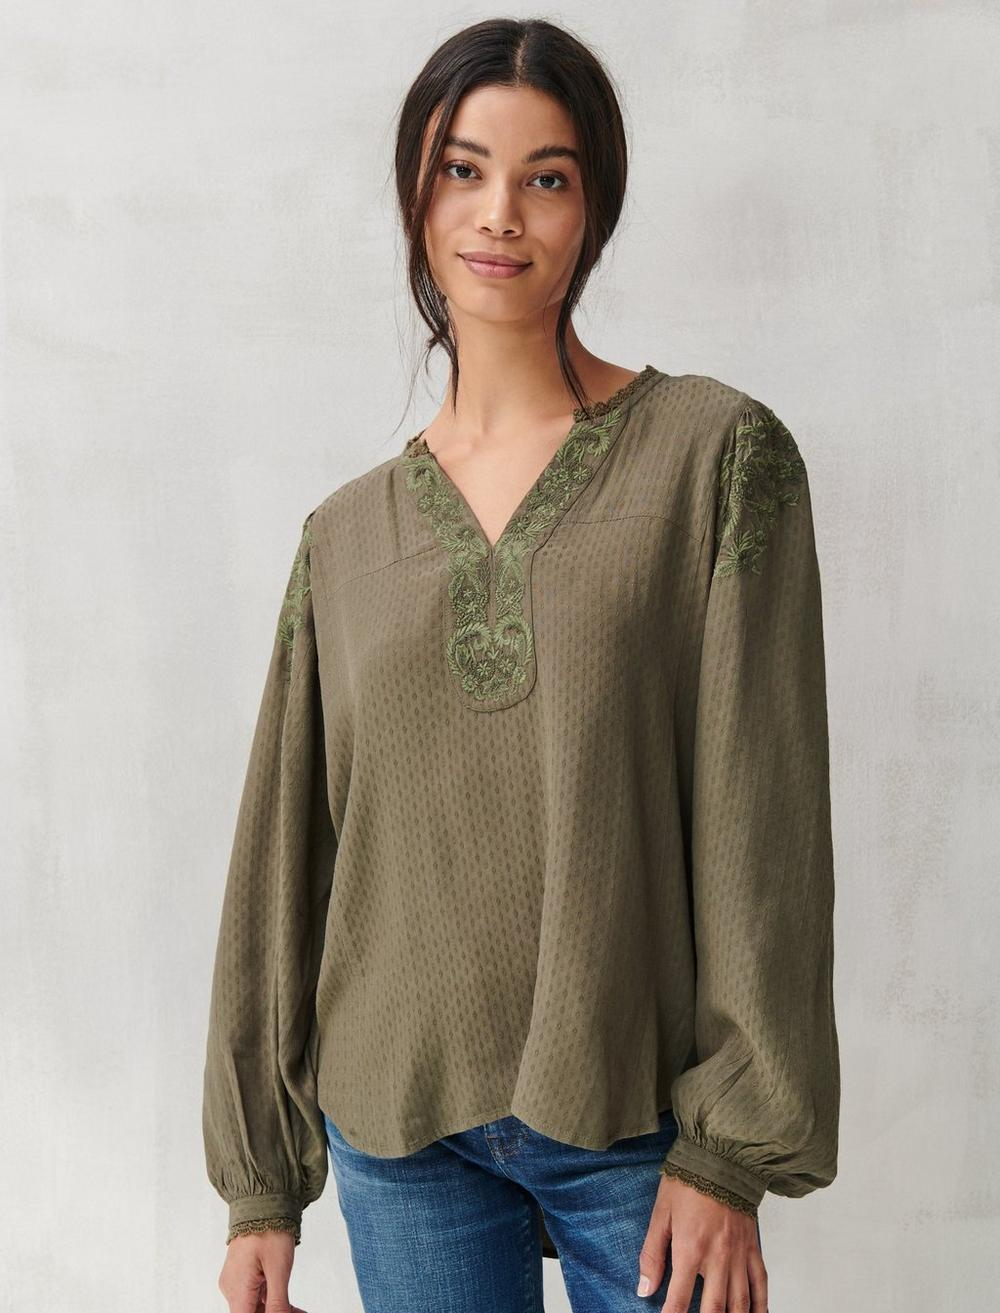 TEXTURED EMBROIDERED PEASANT TOP, image 4